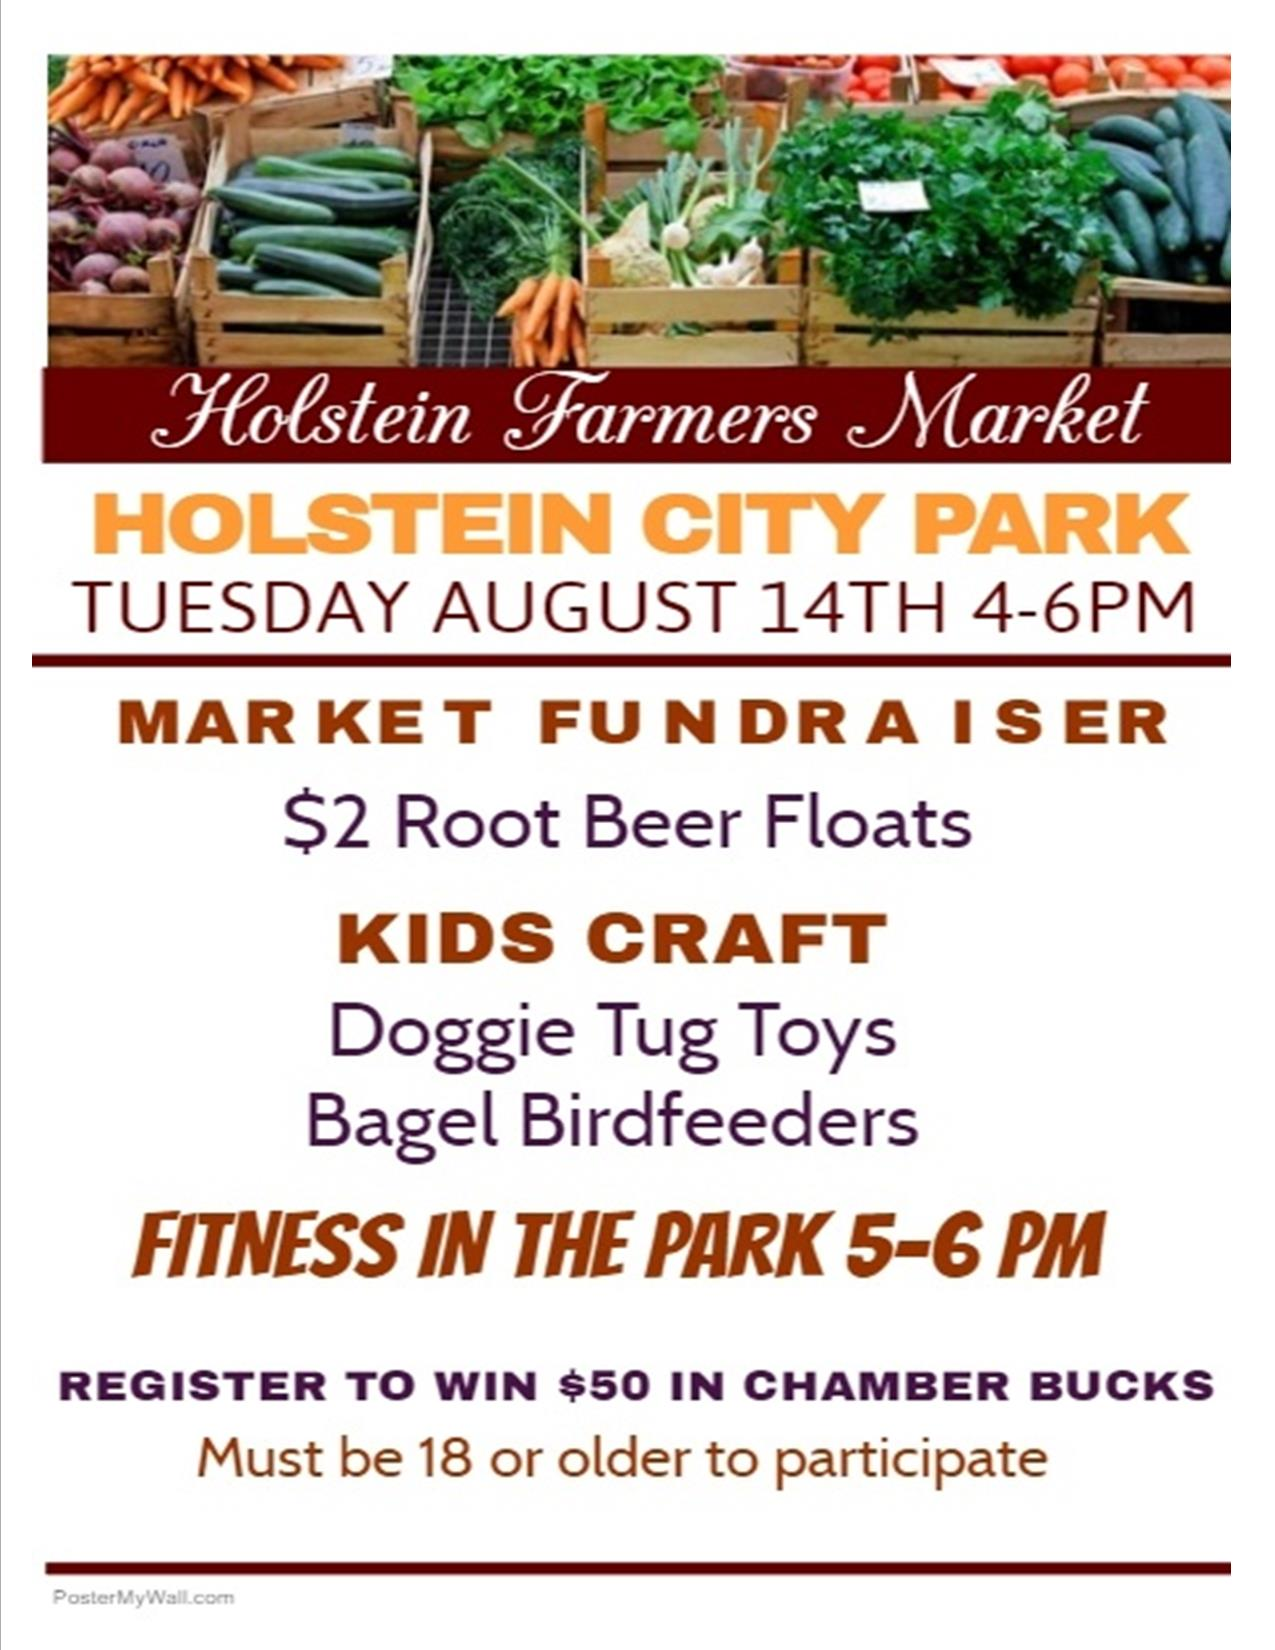 FARMERS MARKET AUG 14